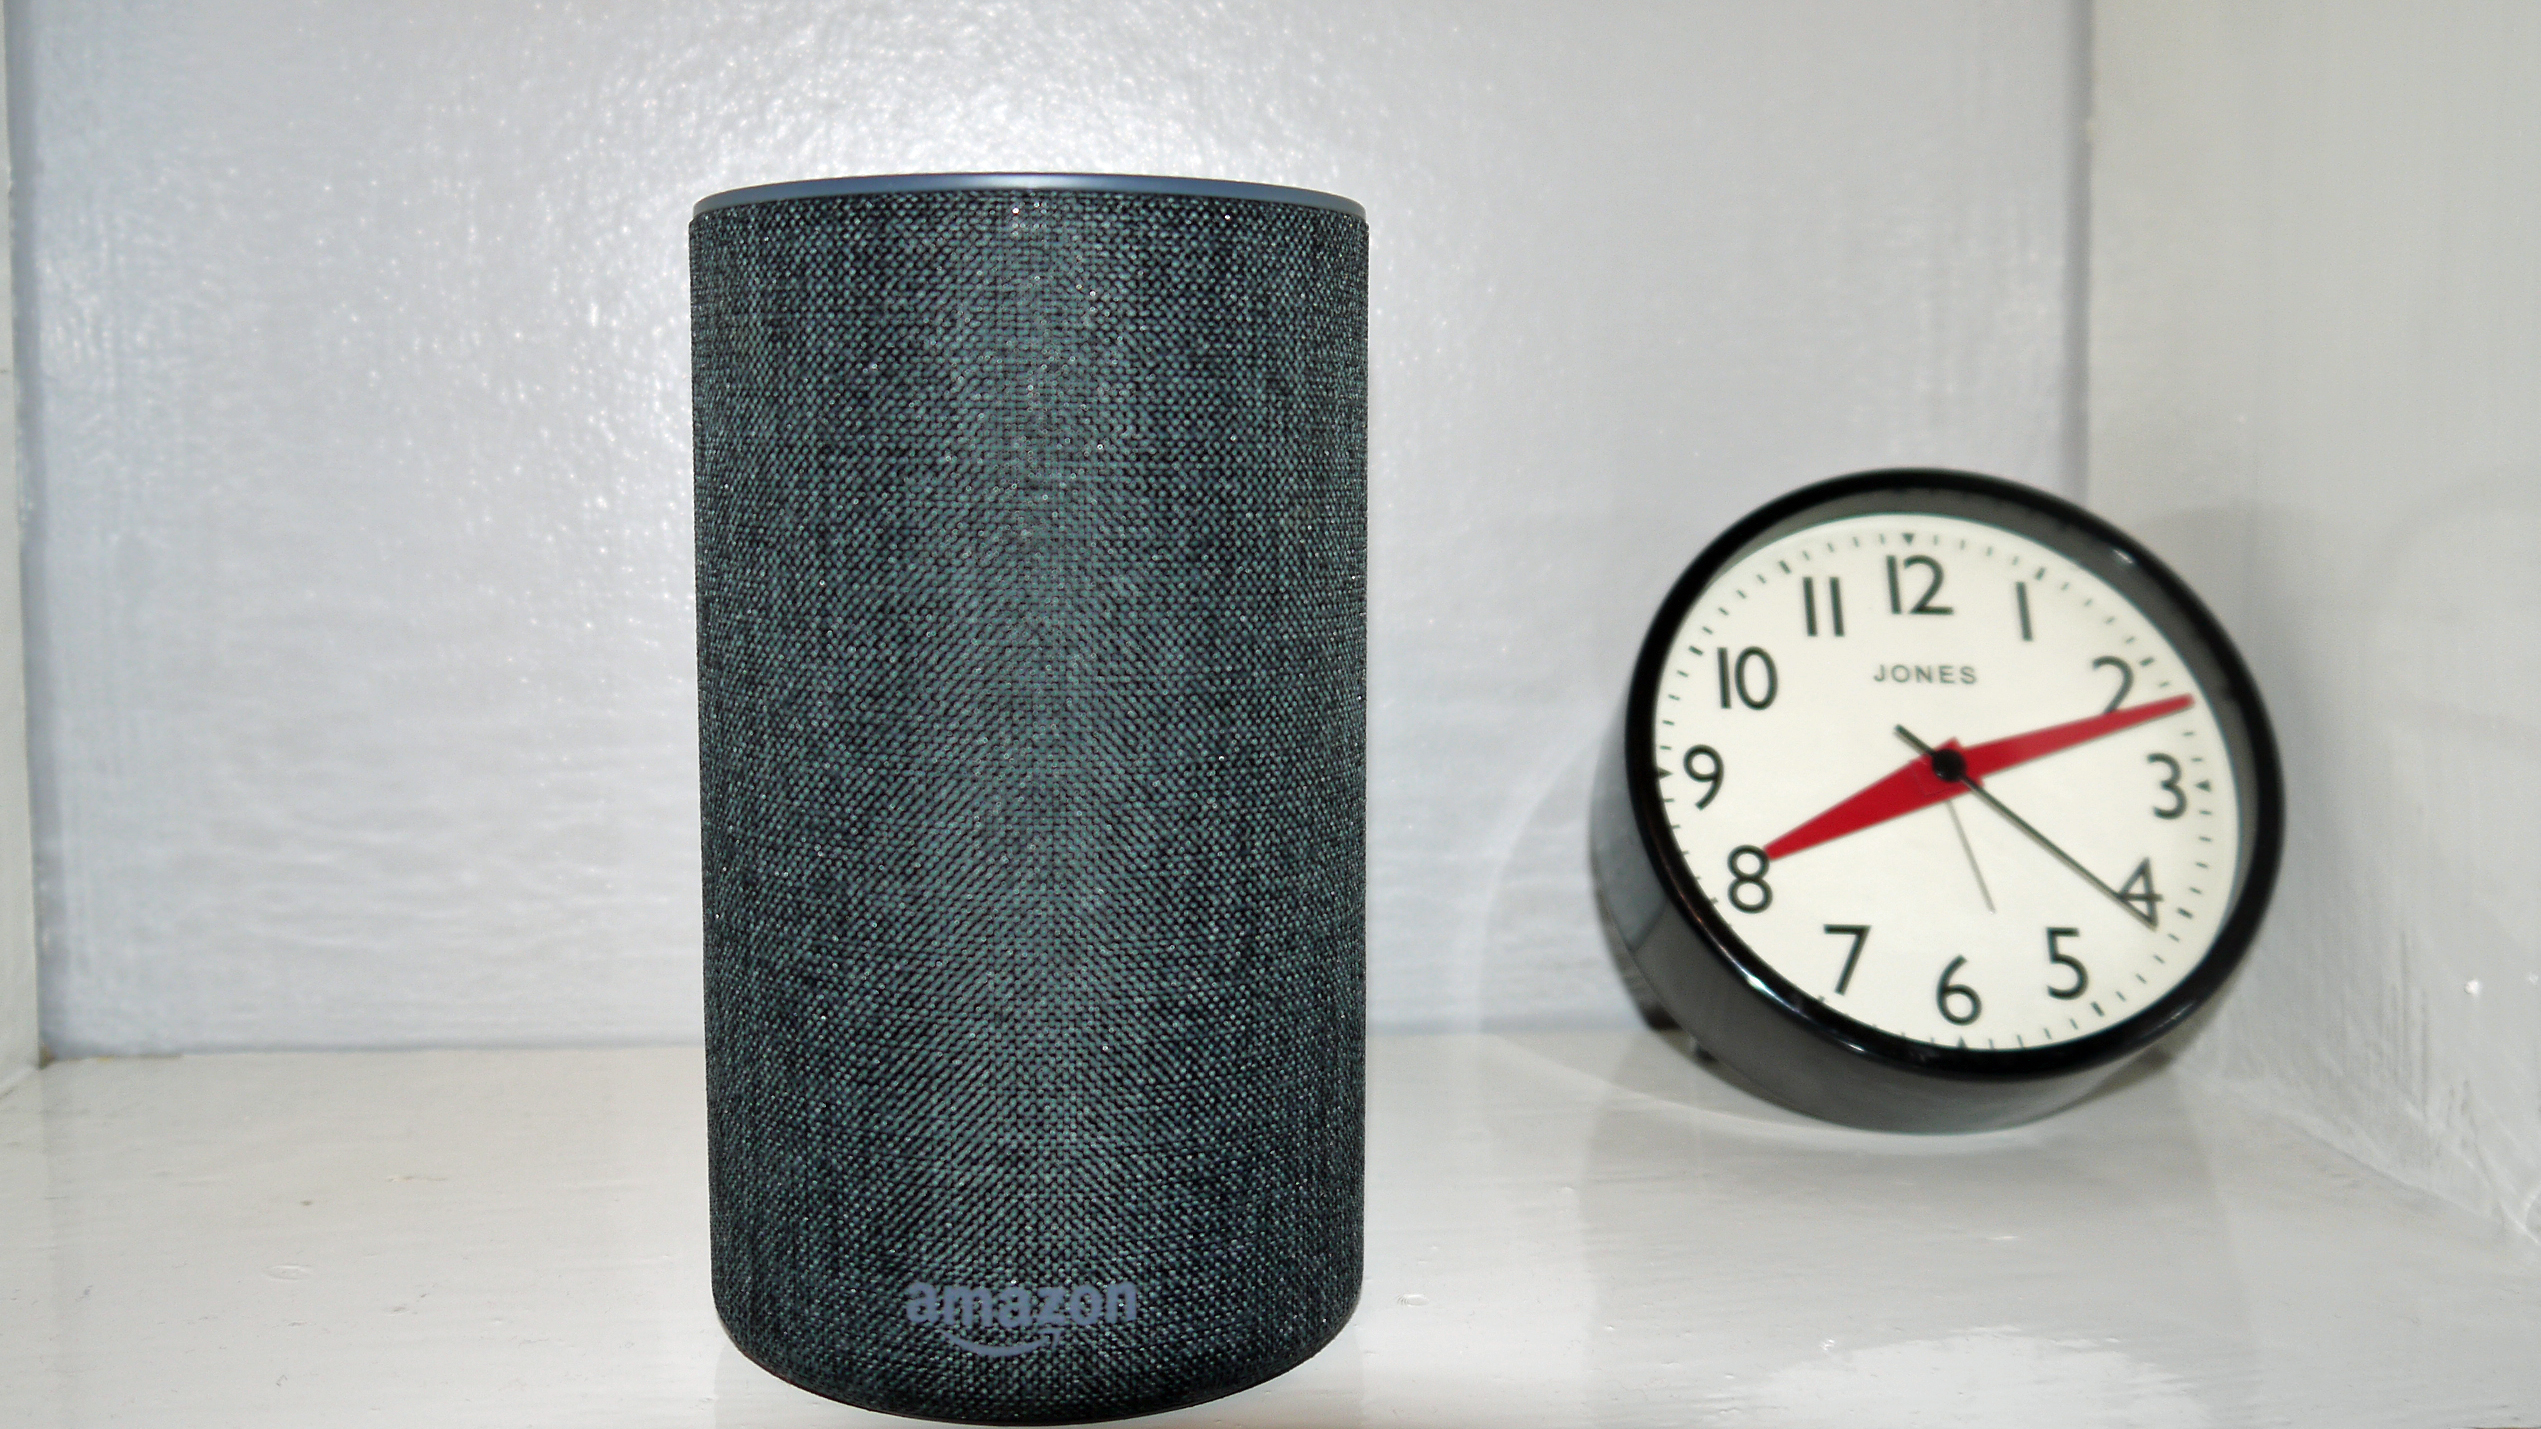 Amazon Echo with clock